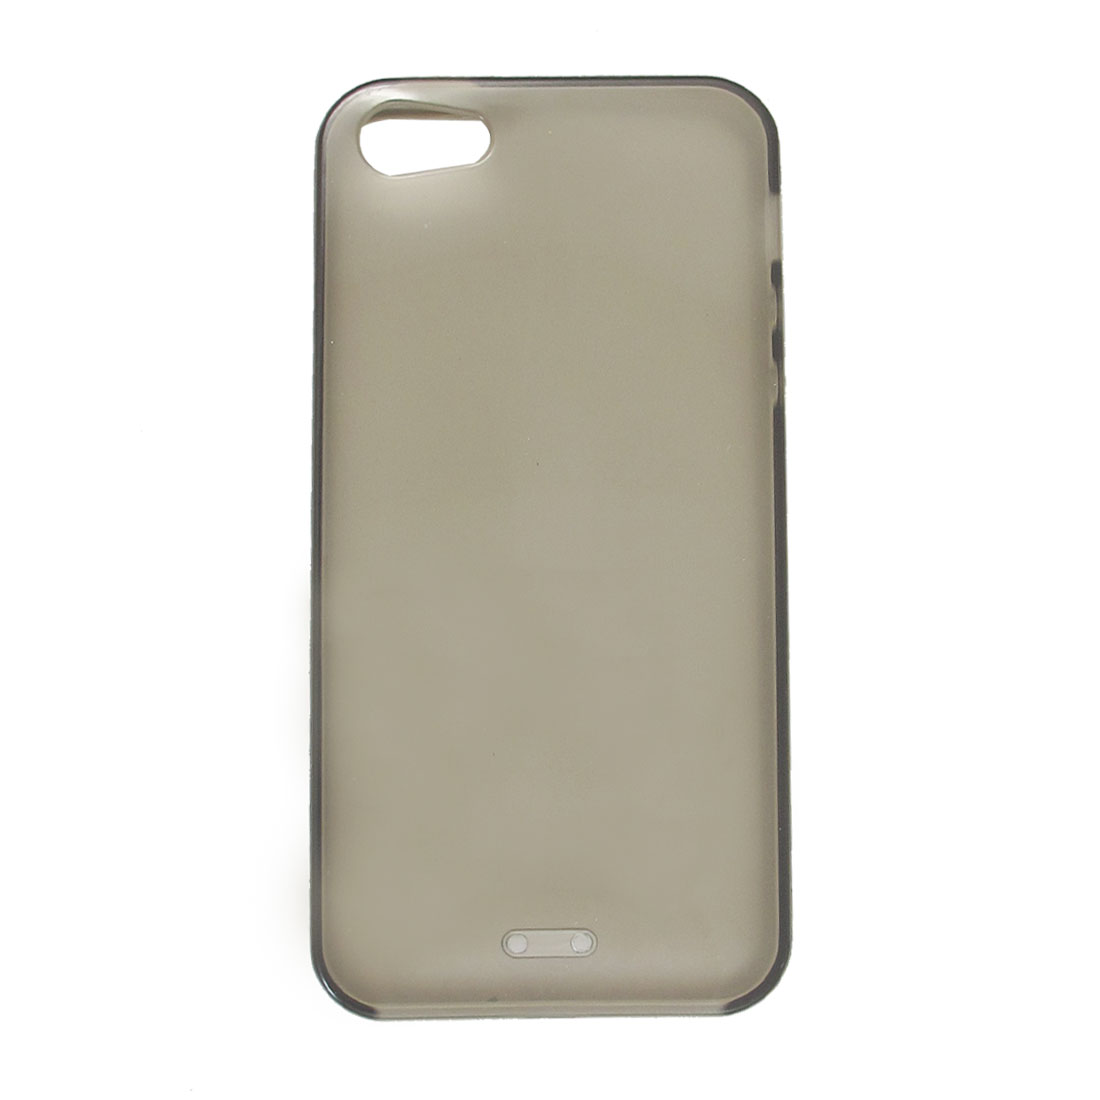 Clear Gray Soft Plastic TPU Protective Back Case Cover for Apple iPhone 5 5G